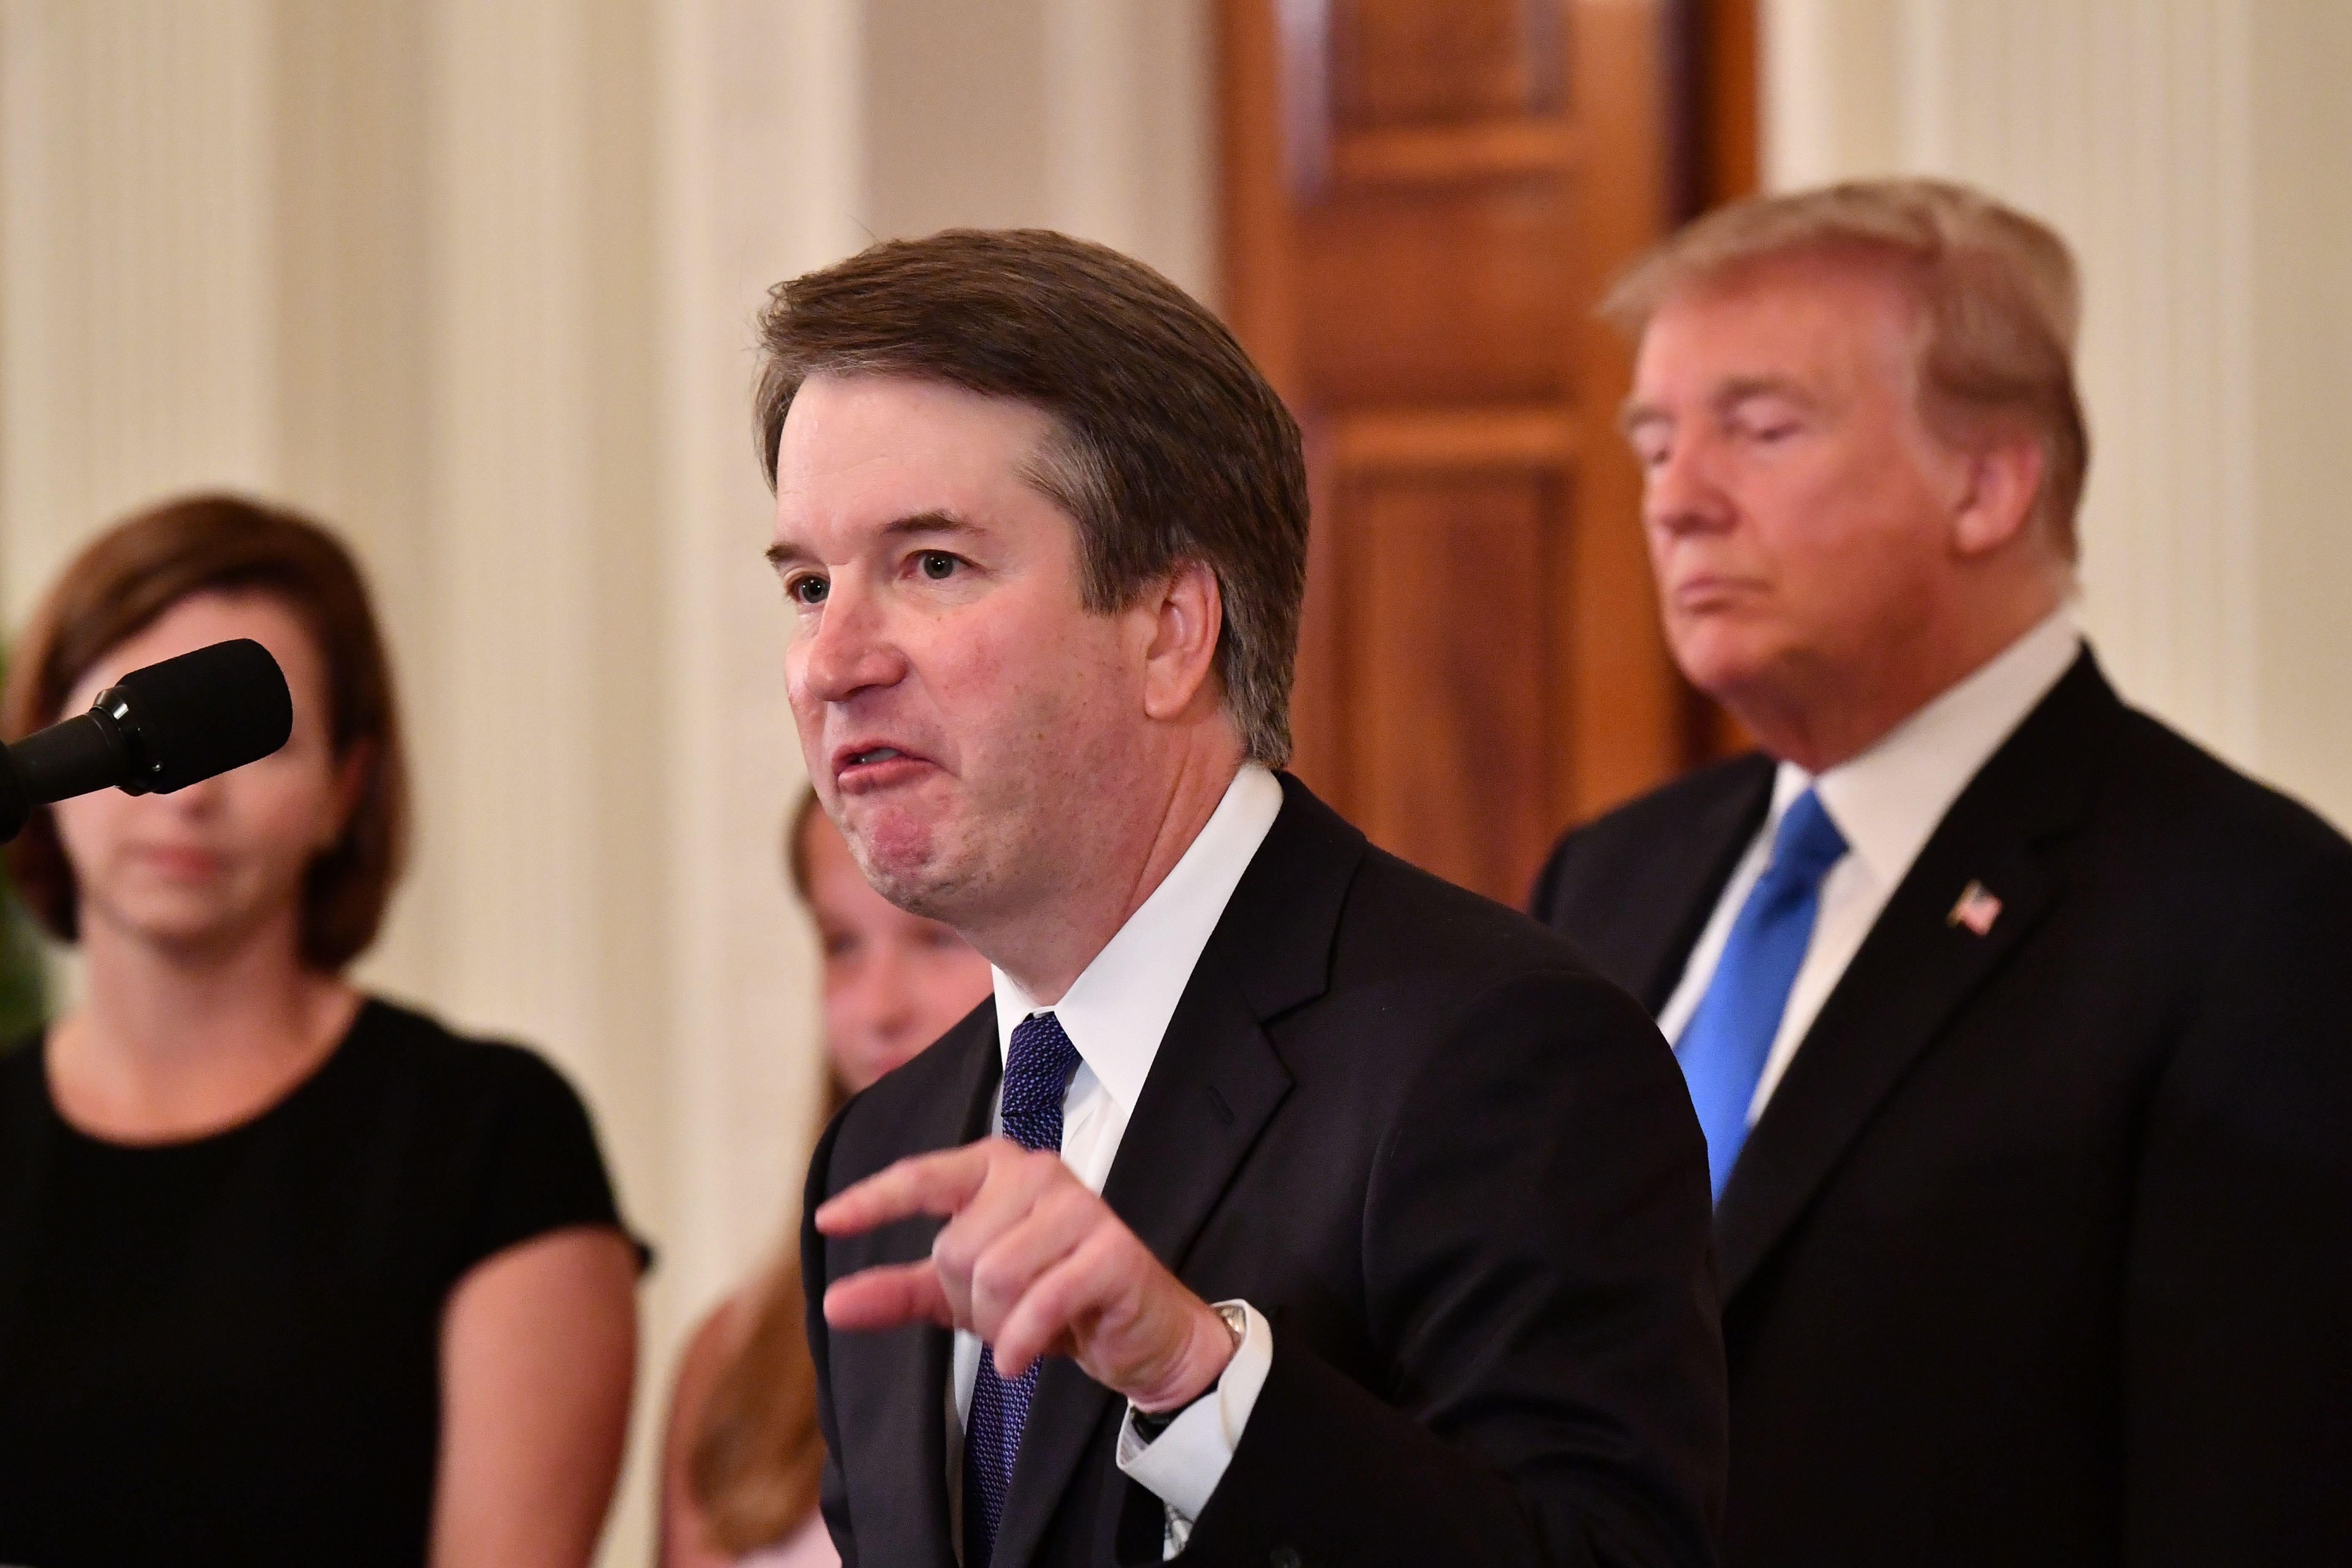 Supreme Court nominee Brett Kavanaugh speaks after US President Donald Trump announced his nomination in the East Room of the White House on July 9, 2018 in Washington, DC. (Photo by MANDEL NGAN / AFP)        (Photo credit should read MANDEL NGAN/AFP/Getty Images)